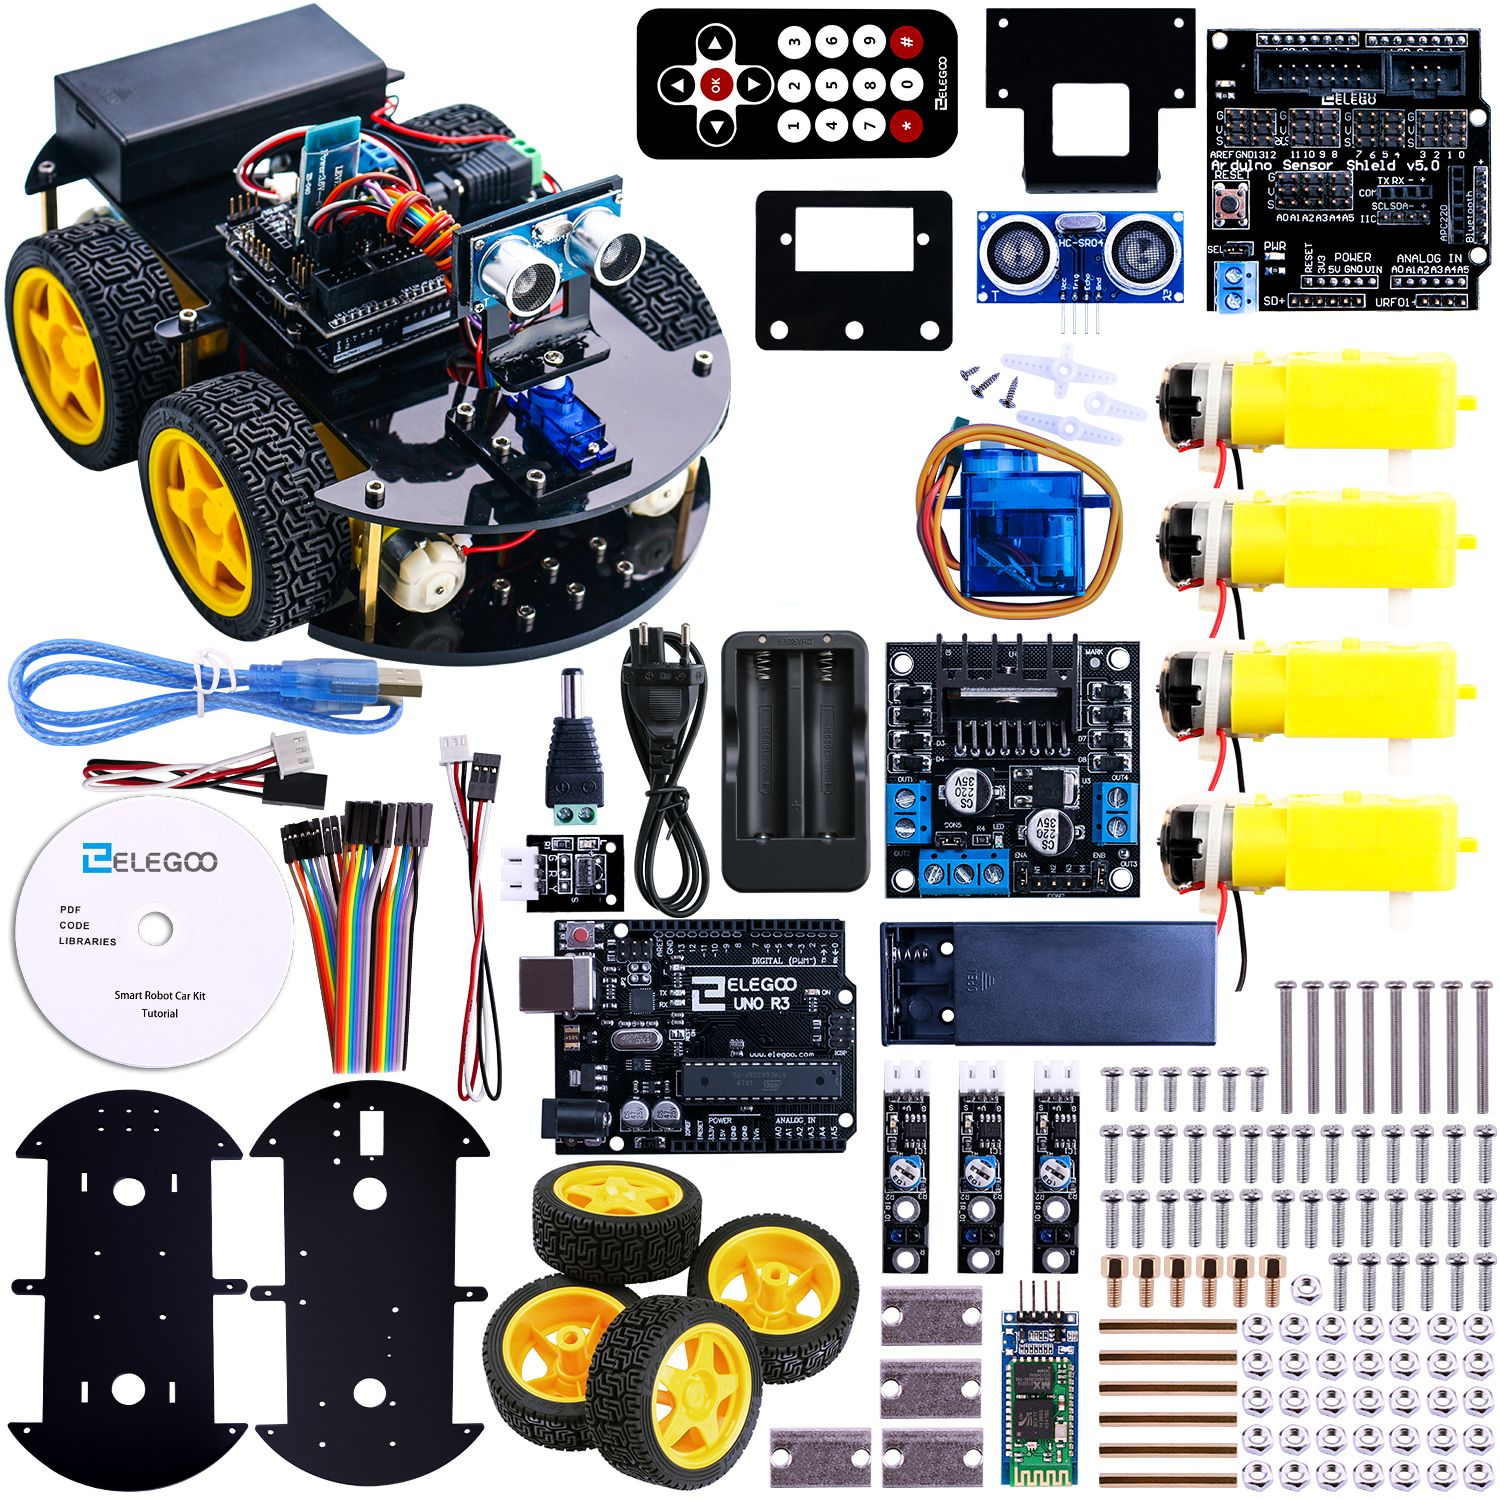 Multi-function Smart Car Kit Bluetooth Chassis Suit Tracking Compatible Uno R3 Diy Rc Electronic Toy Robot With 1602 Active Components